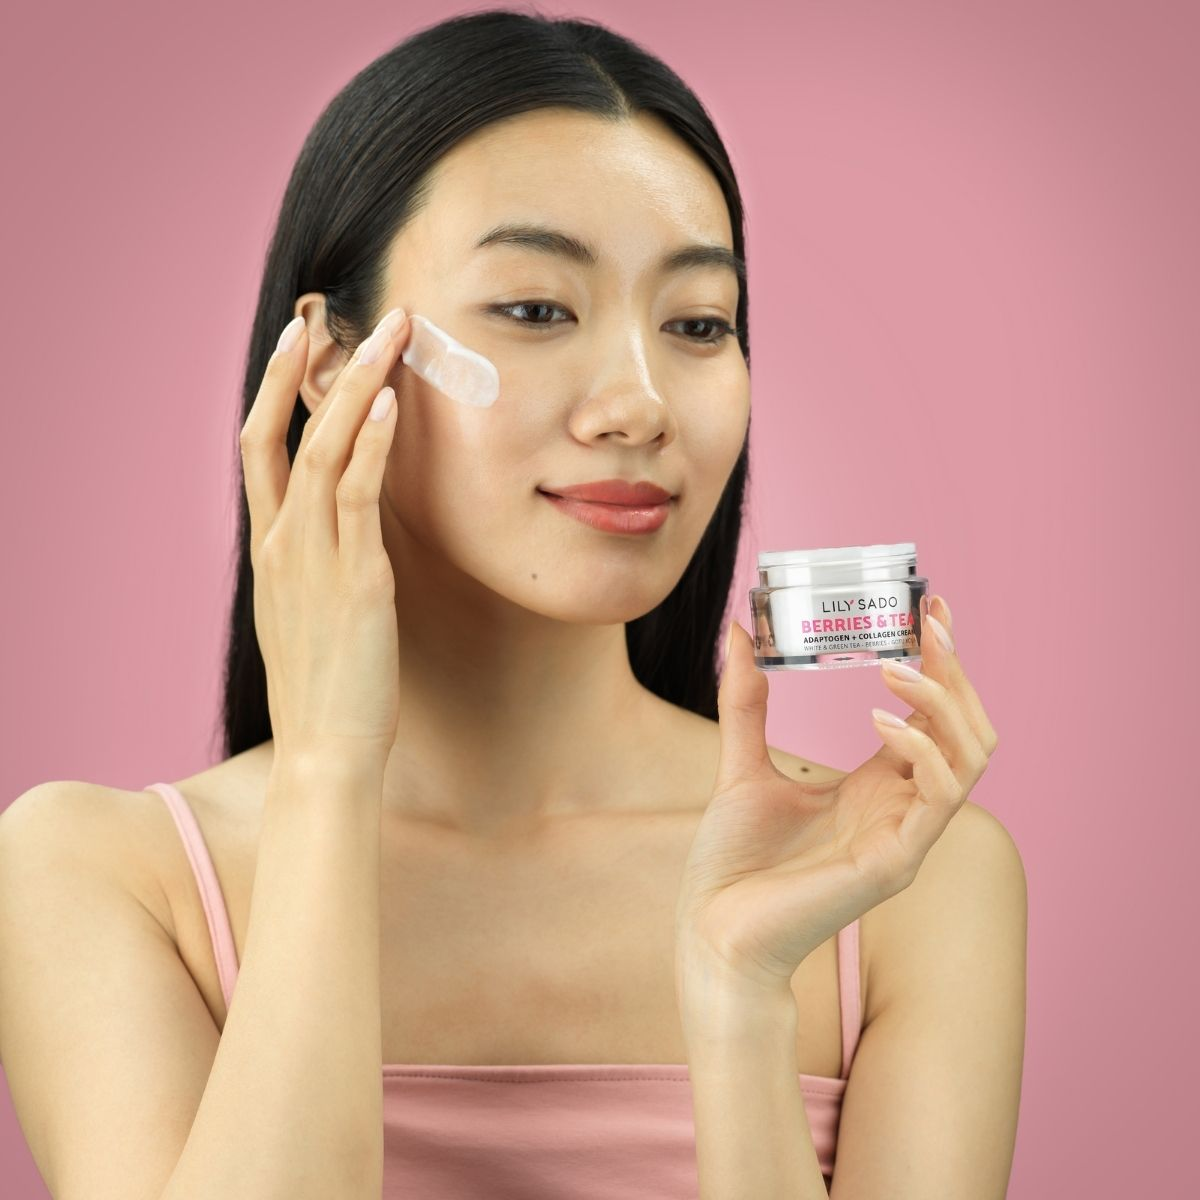 Asian model with cosmetics on a pink background showing the product